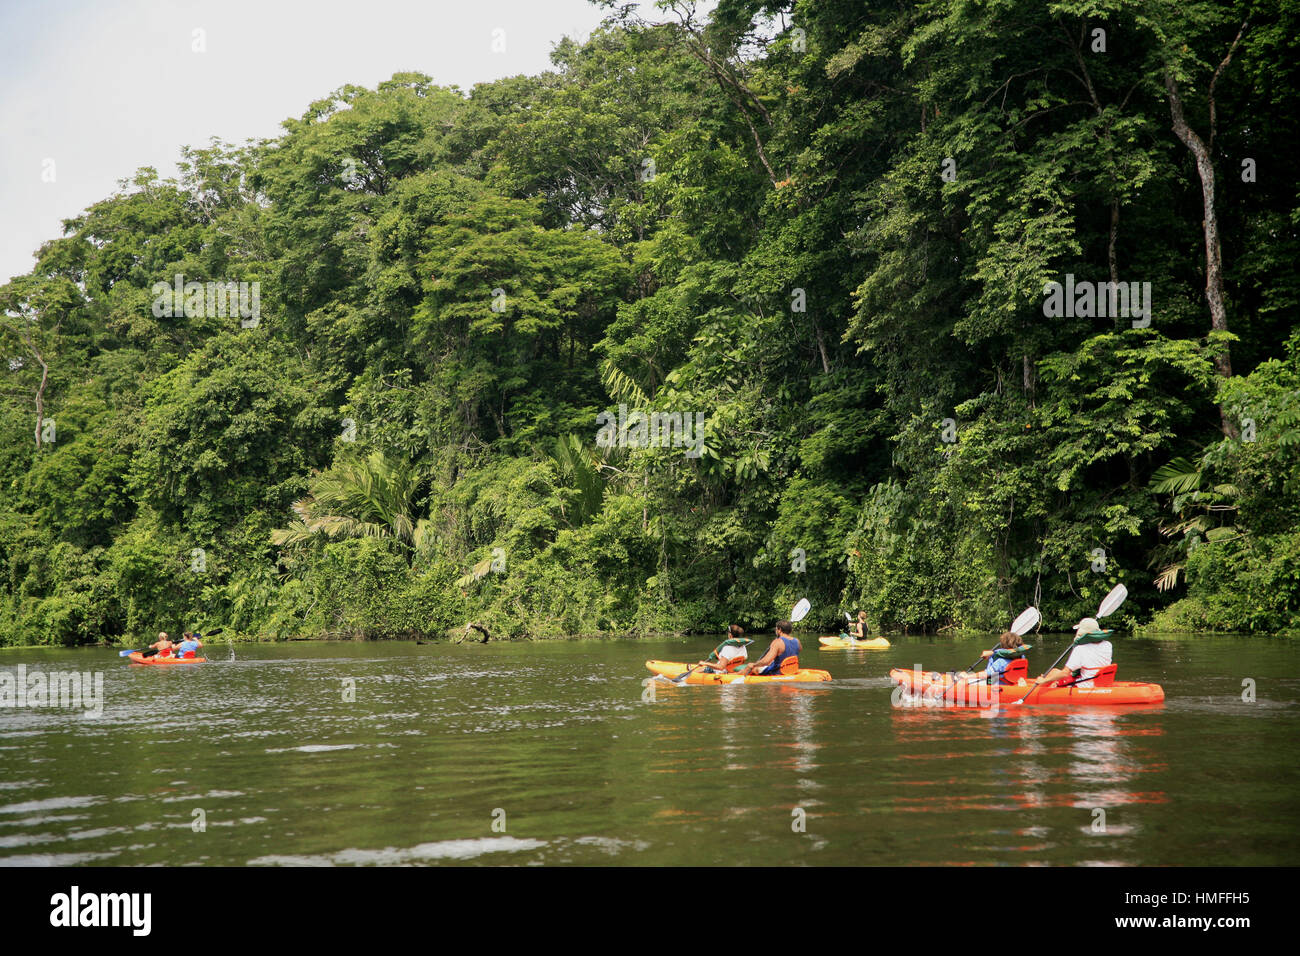 Tourists in kayaks on freshwater canals in Tortuguero National Park, Caribbean coast, Costa Rica. - Stock Image